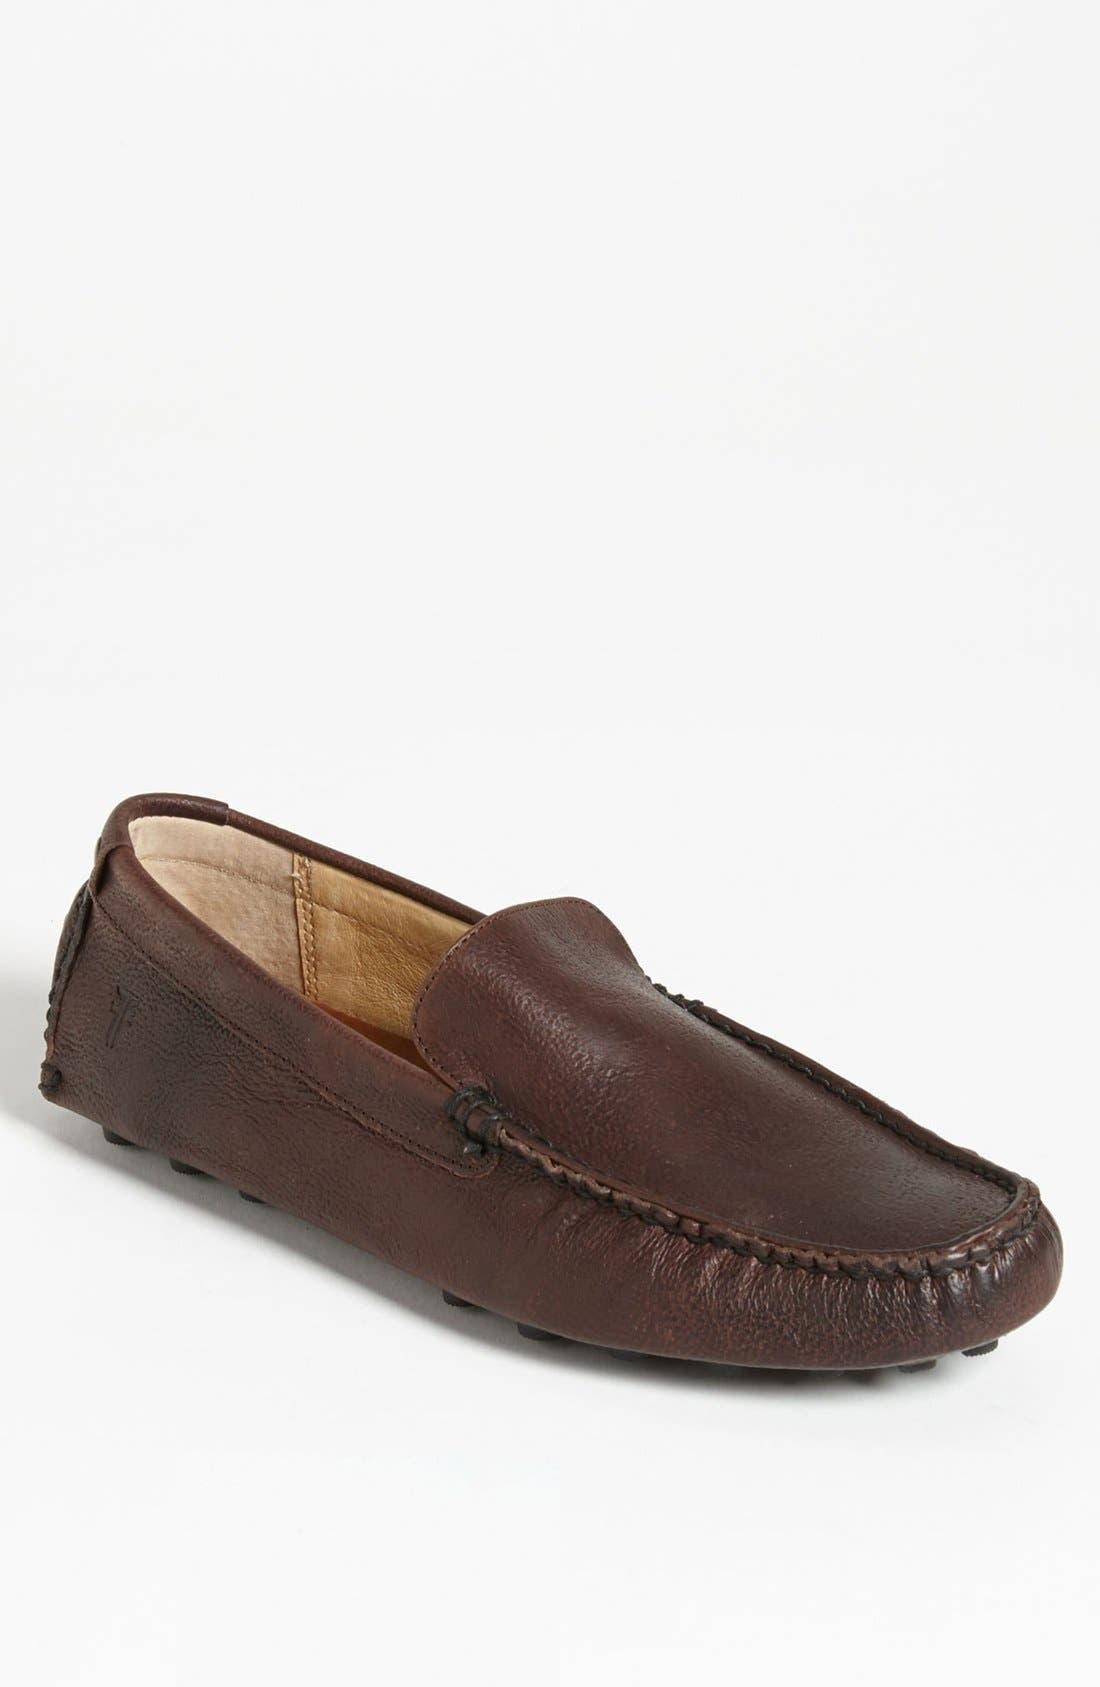 Main Image - Frye 'Russell' Driving Shoe